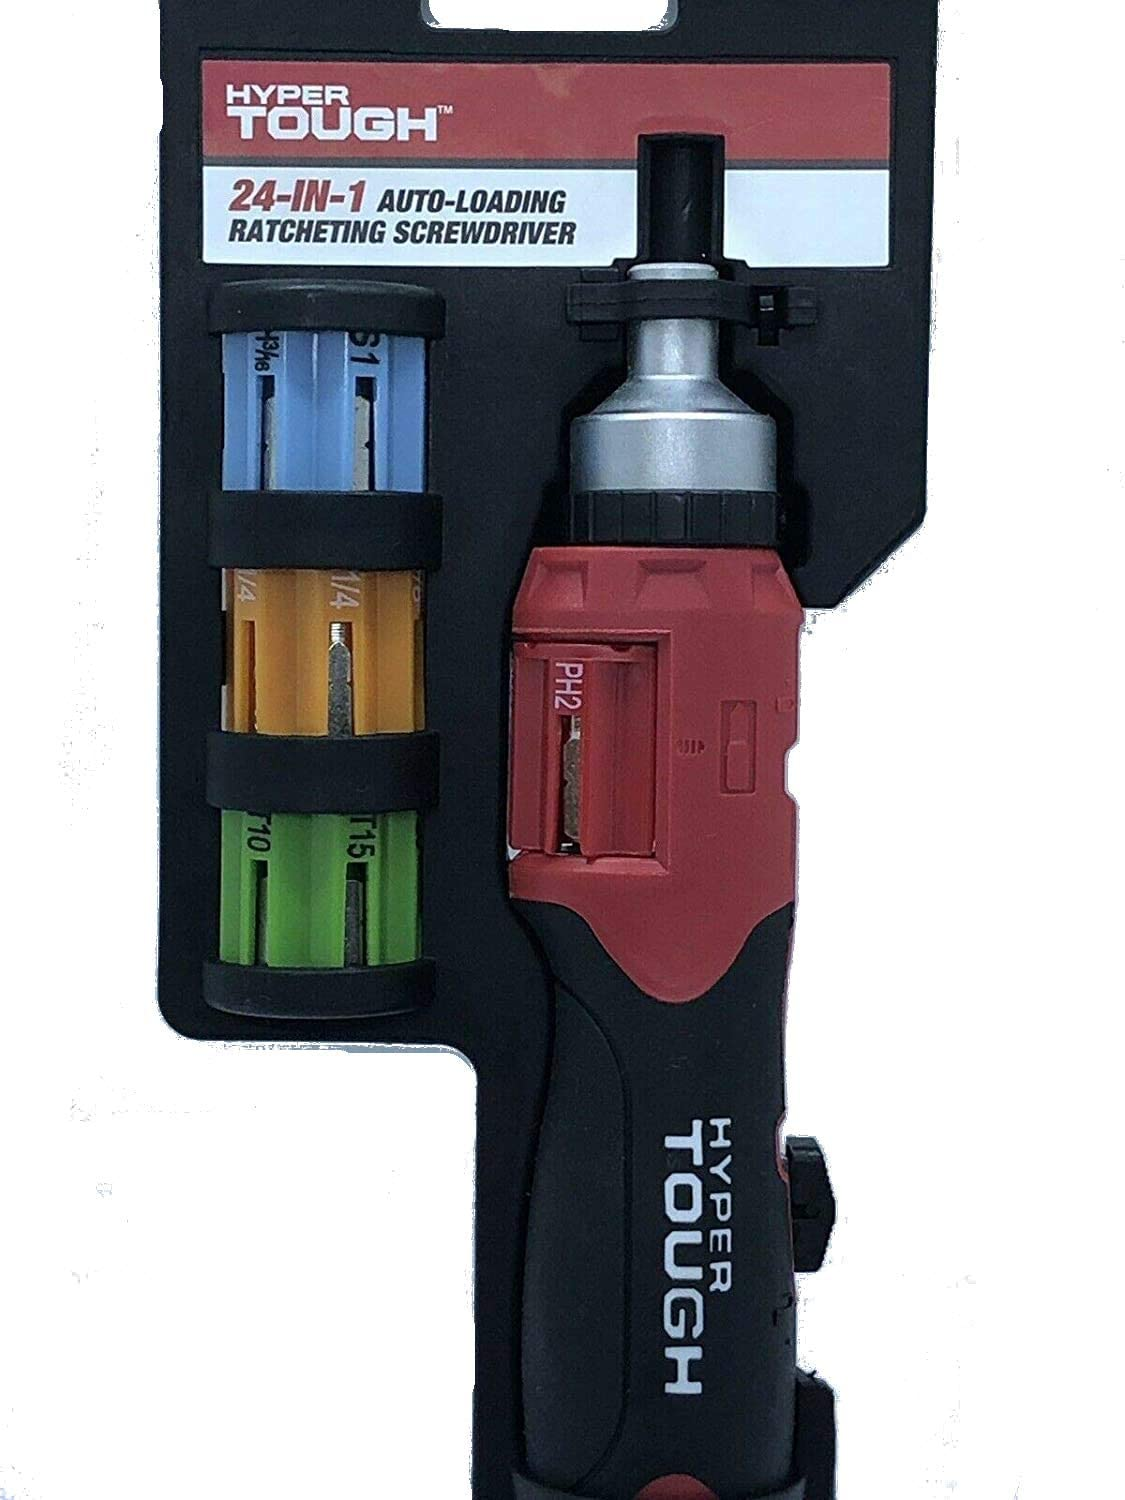 TMAL-002 Triplett 10-in-1 Mini Autoloading Ratcheting Screwdriver with Magnetic Bits